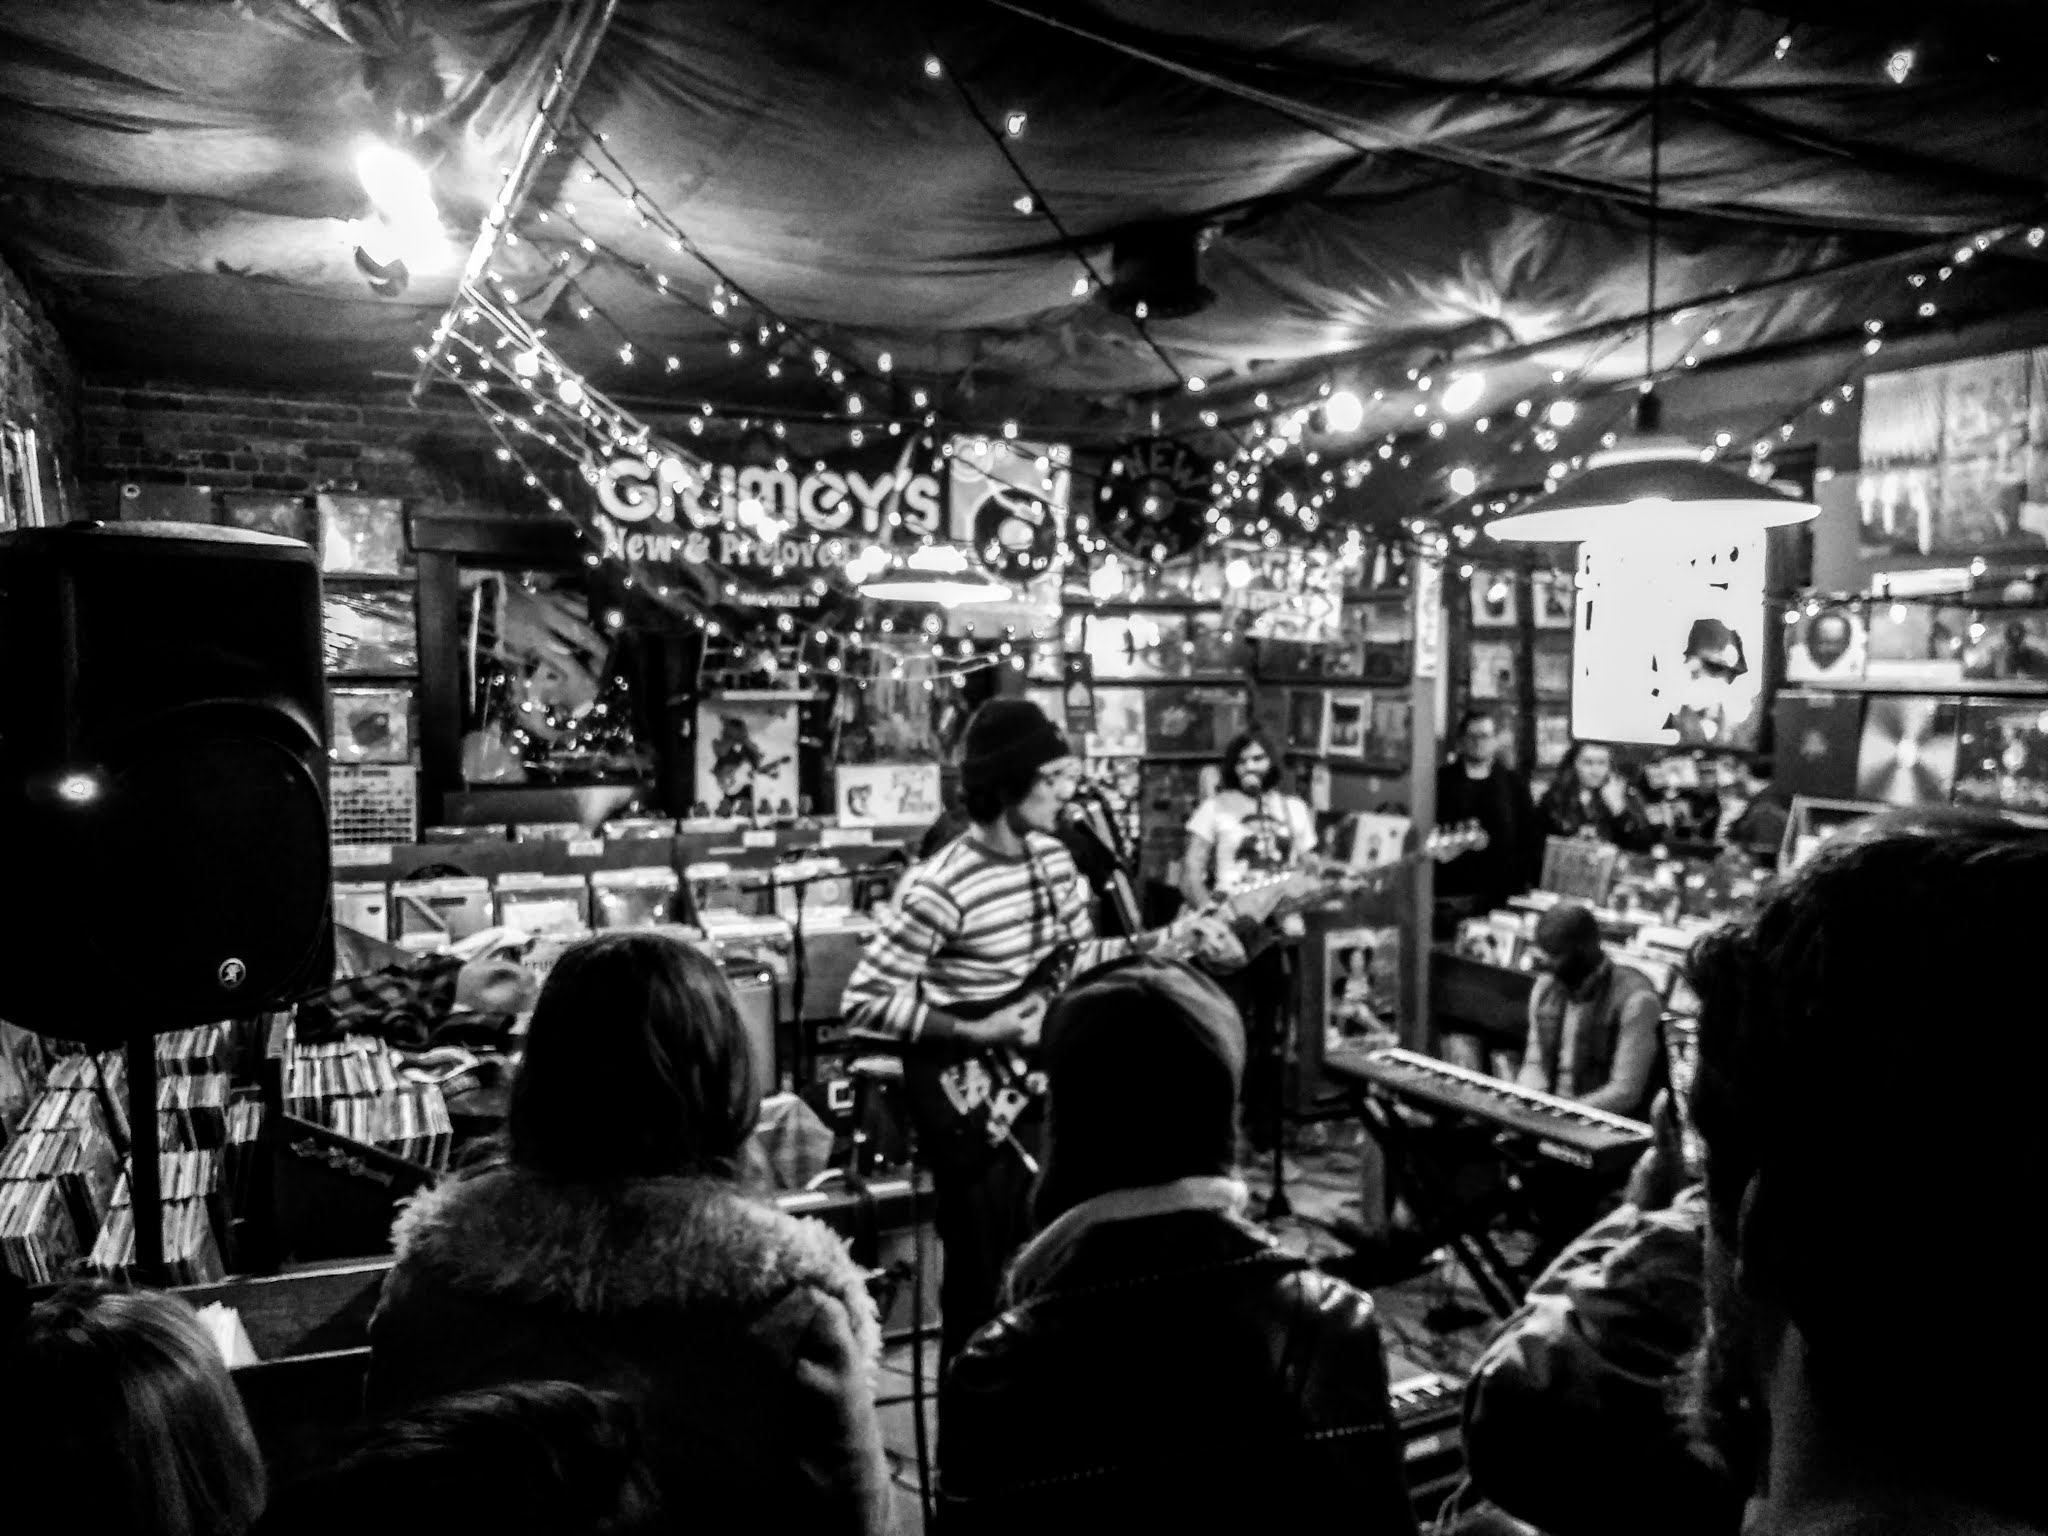 Ron Gallo Grimeys Nashville